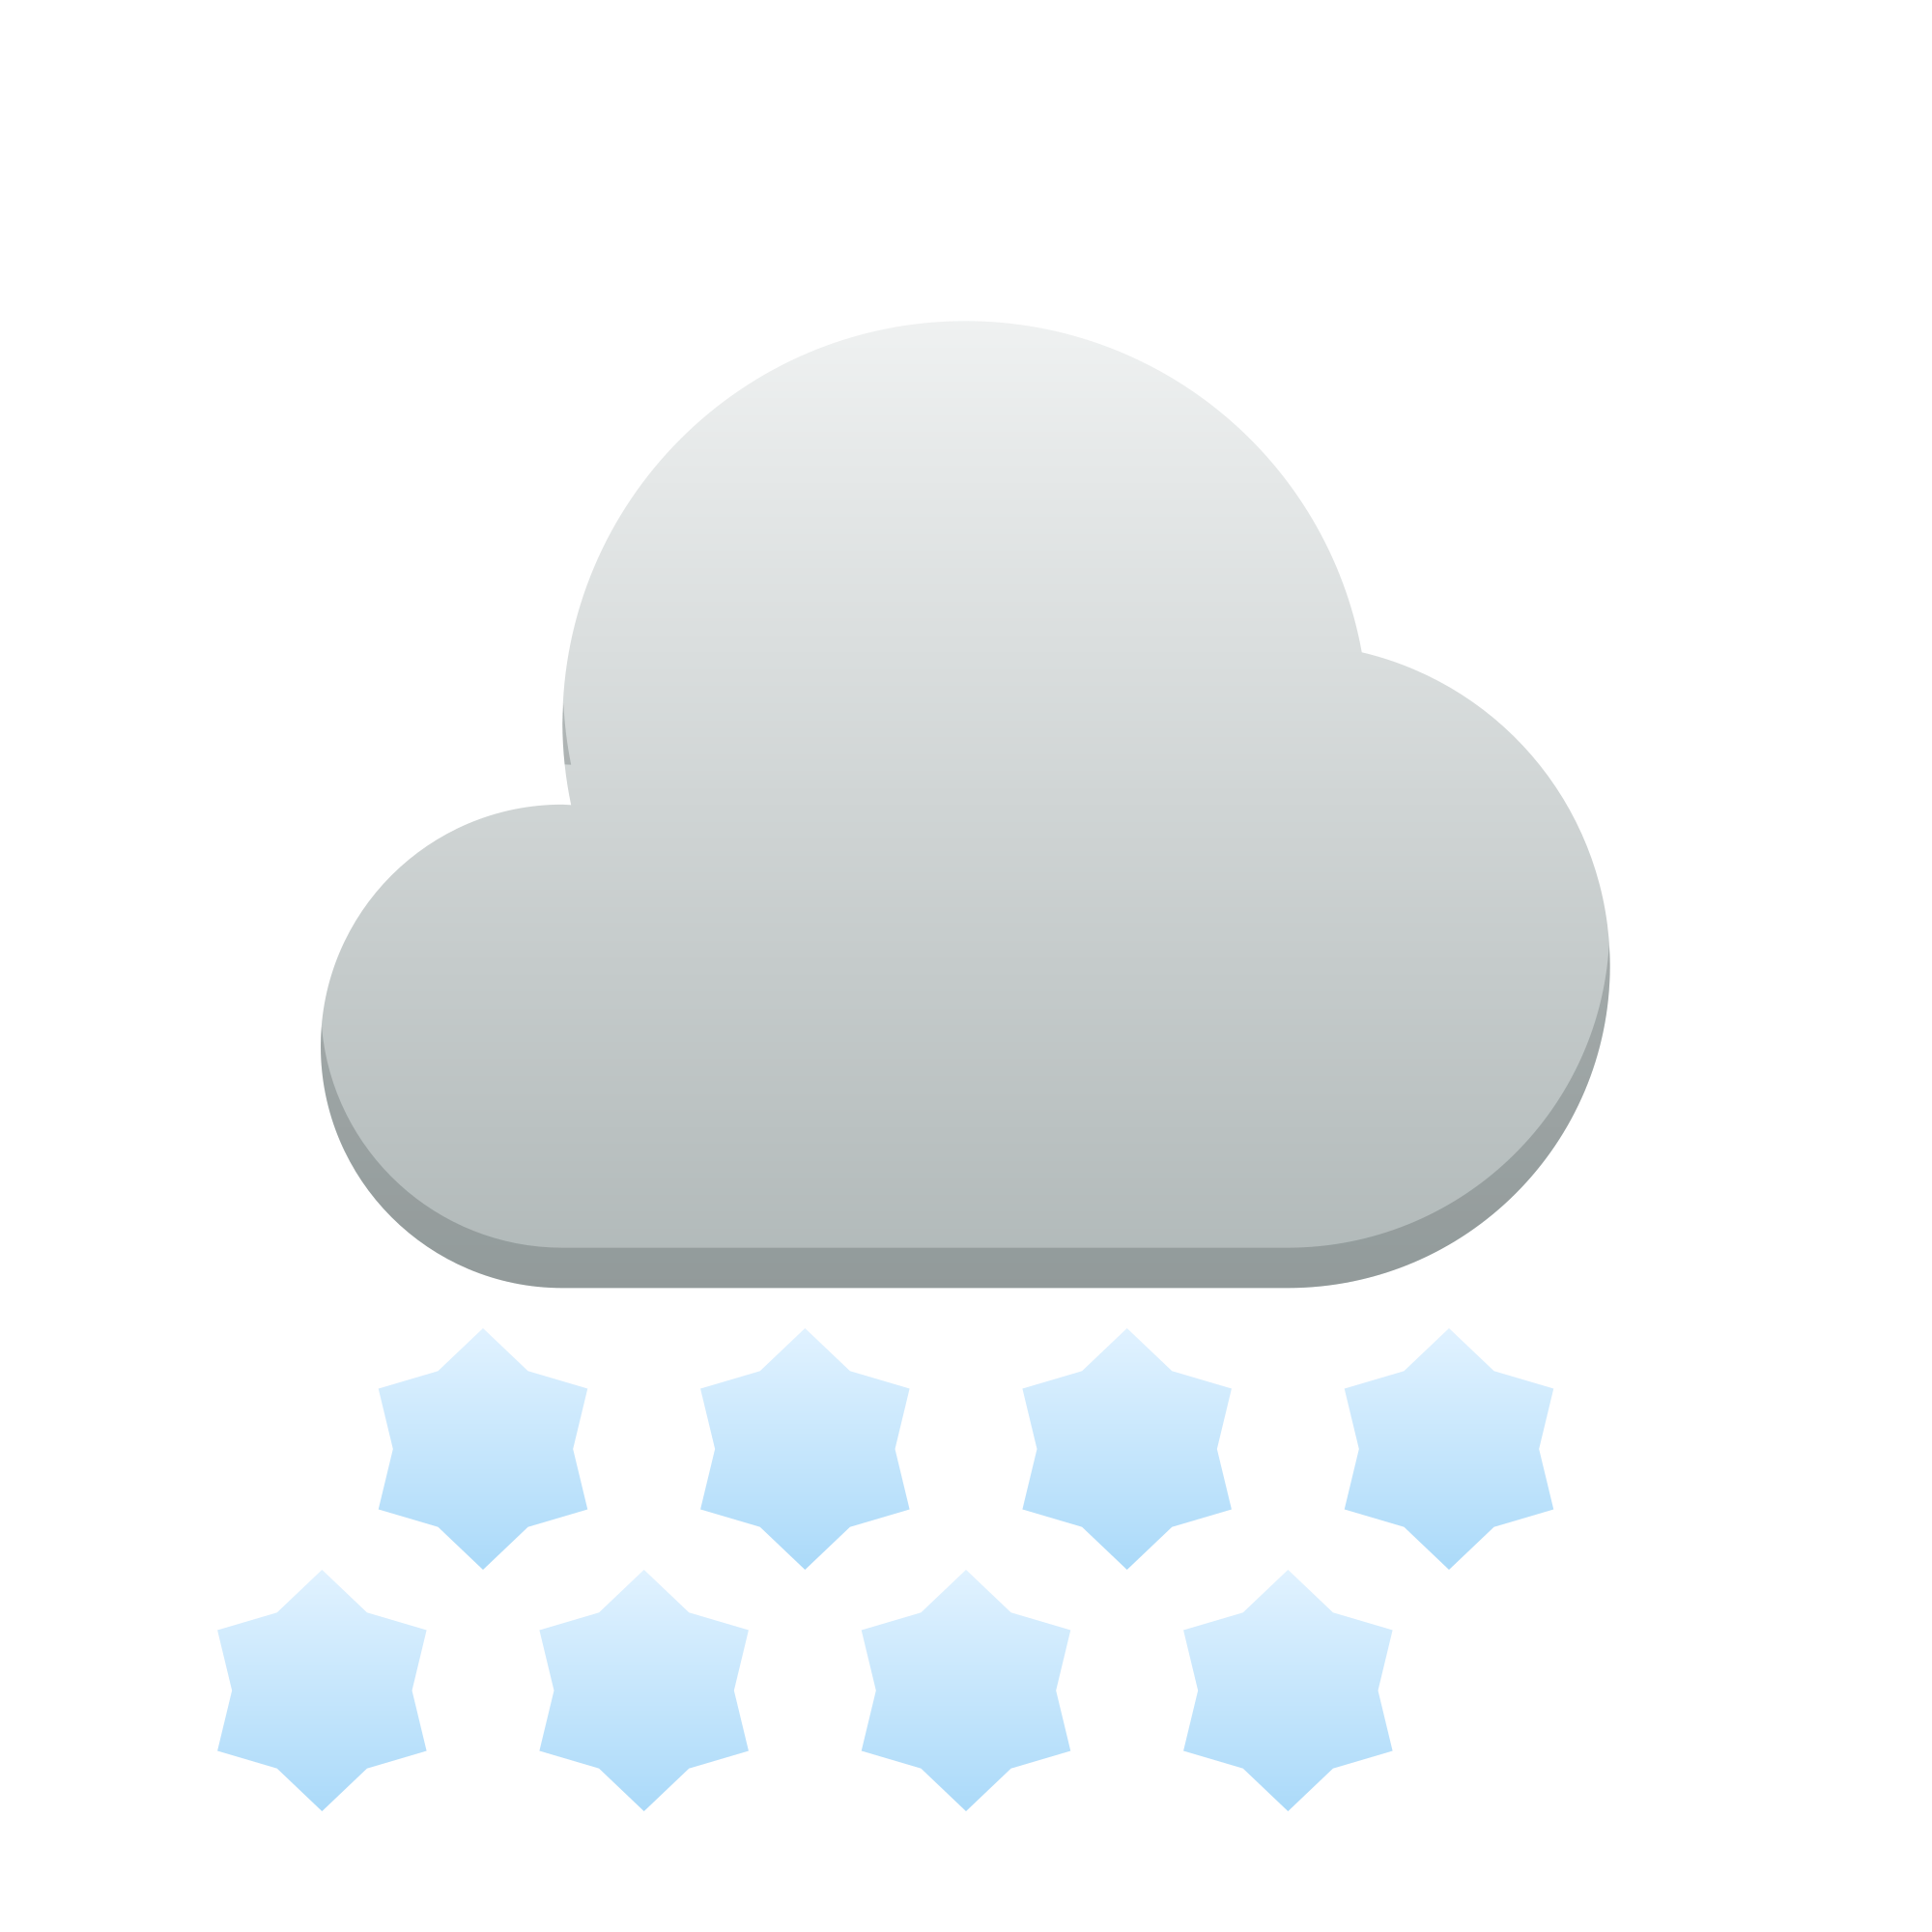 Snow svg weather. File breeze wikimedia commons